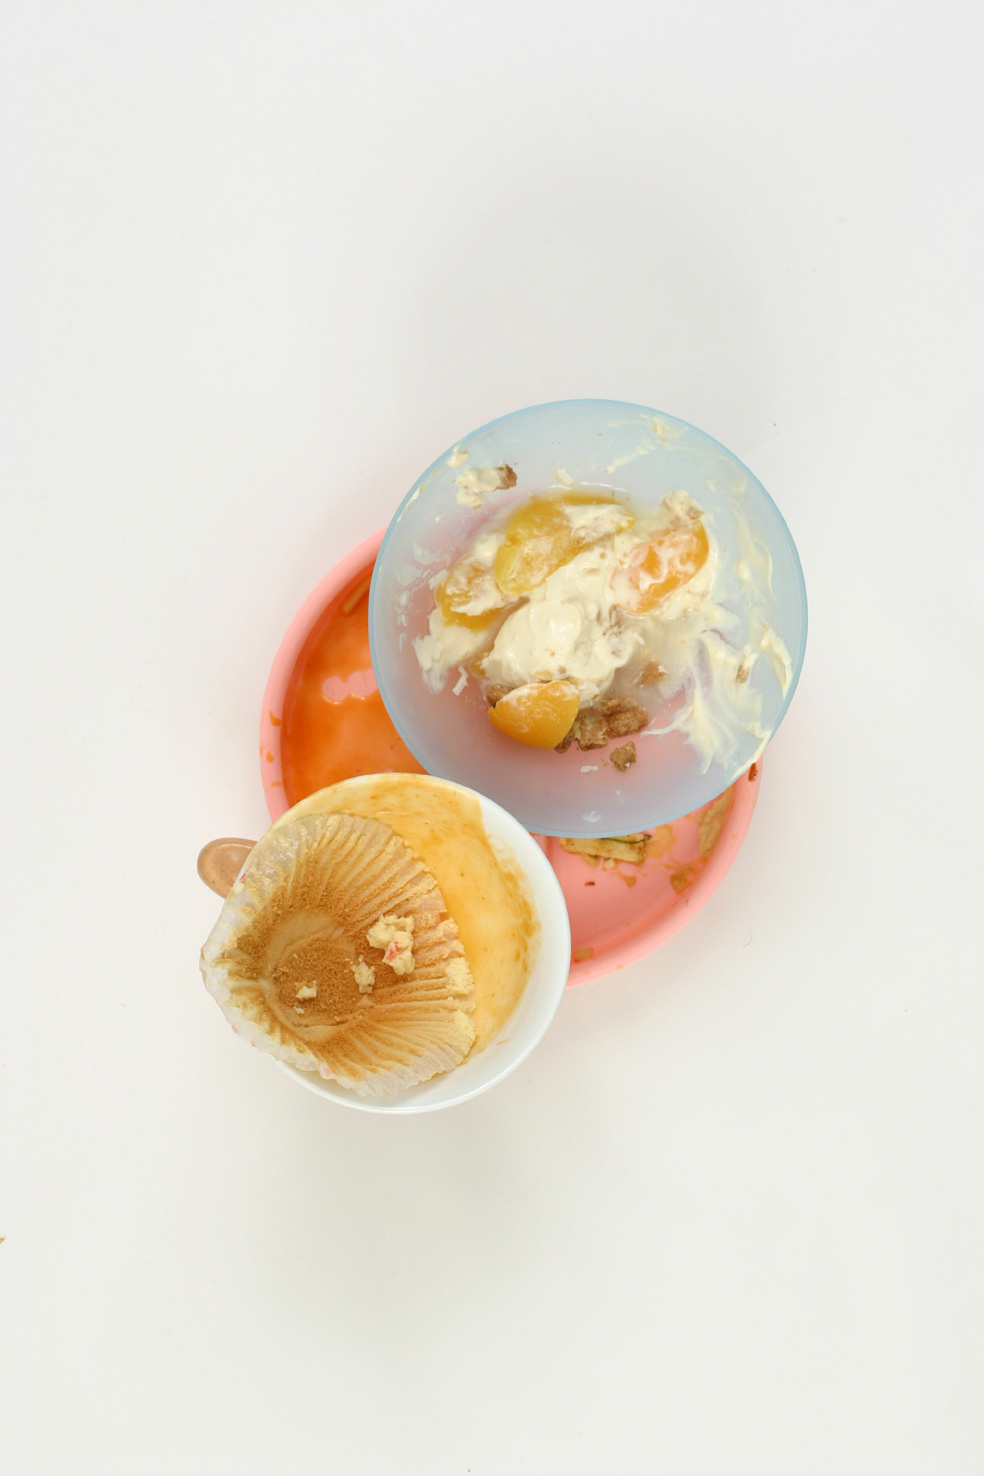 Vin Ryan,  Meals Eaten by Vin, Lisa and Lewis in 2010 (Stack 2),  2010, digital print, 37 x 25cm